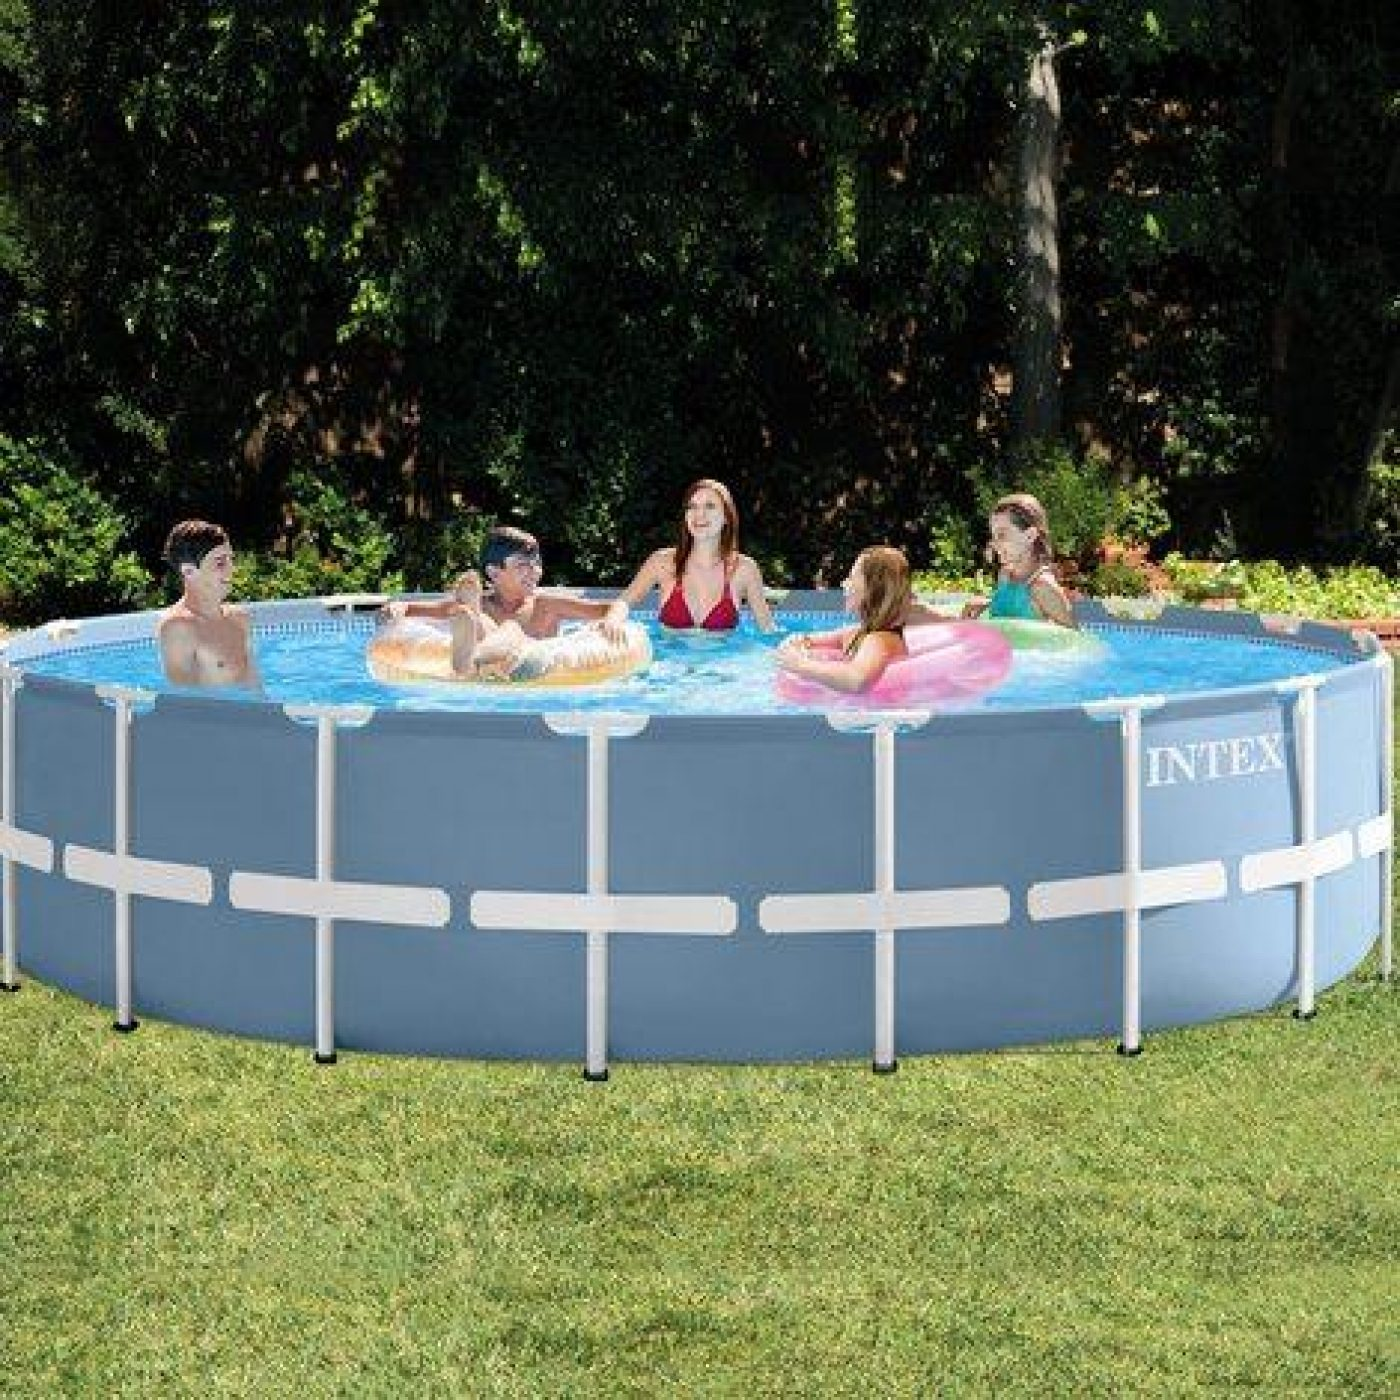 Piscina Intex 6000 Litros Medidas Piscina Desmontable Intex Prisma Frame 732x132 Cm 47